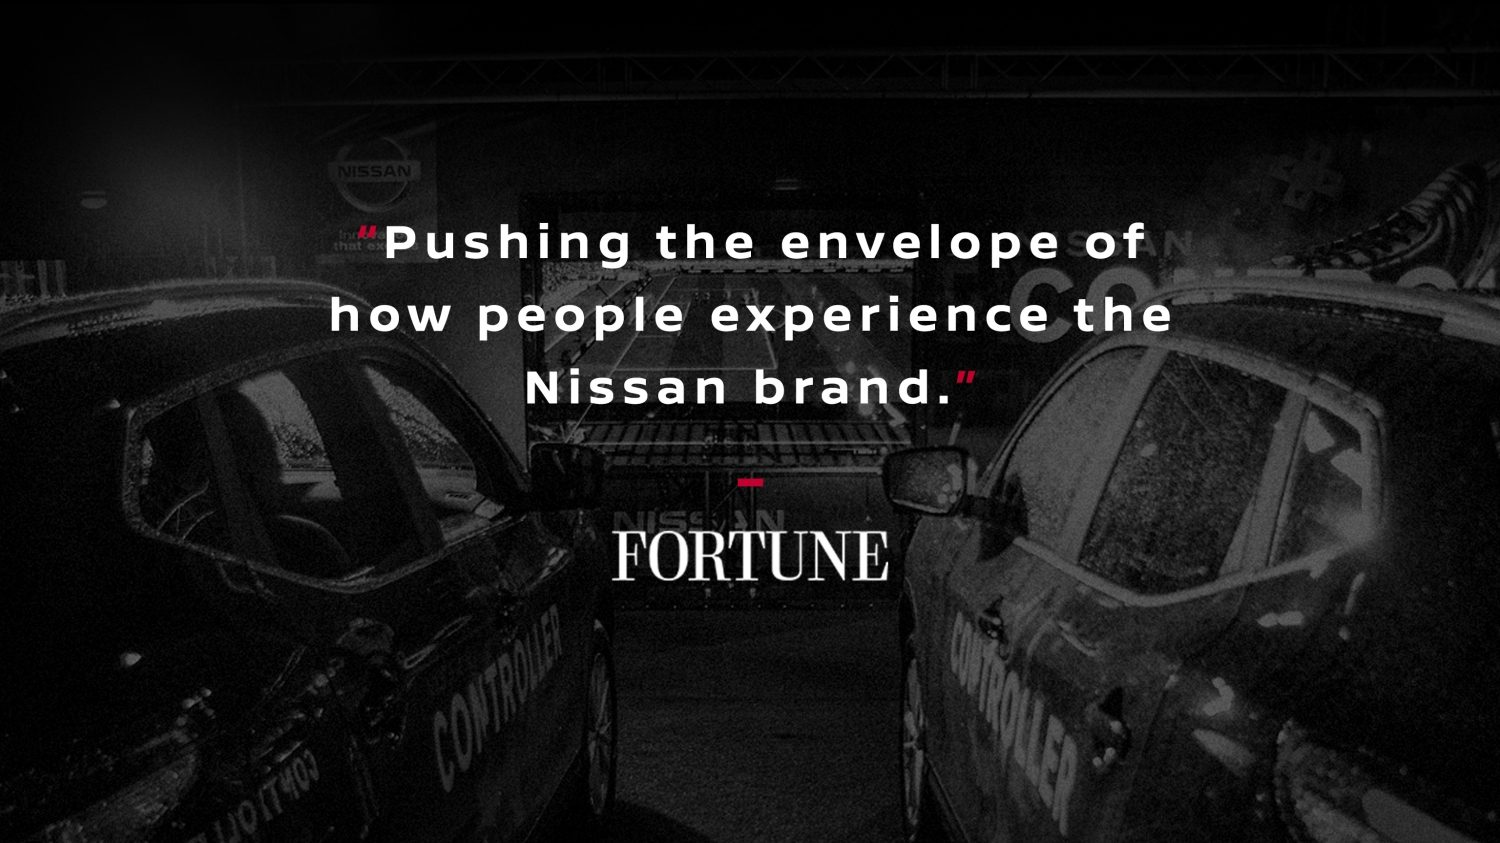 The Fortune about the Nissan Controller